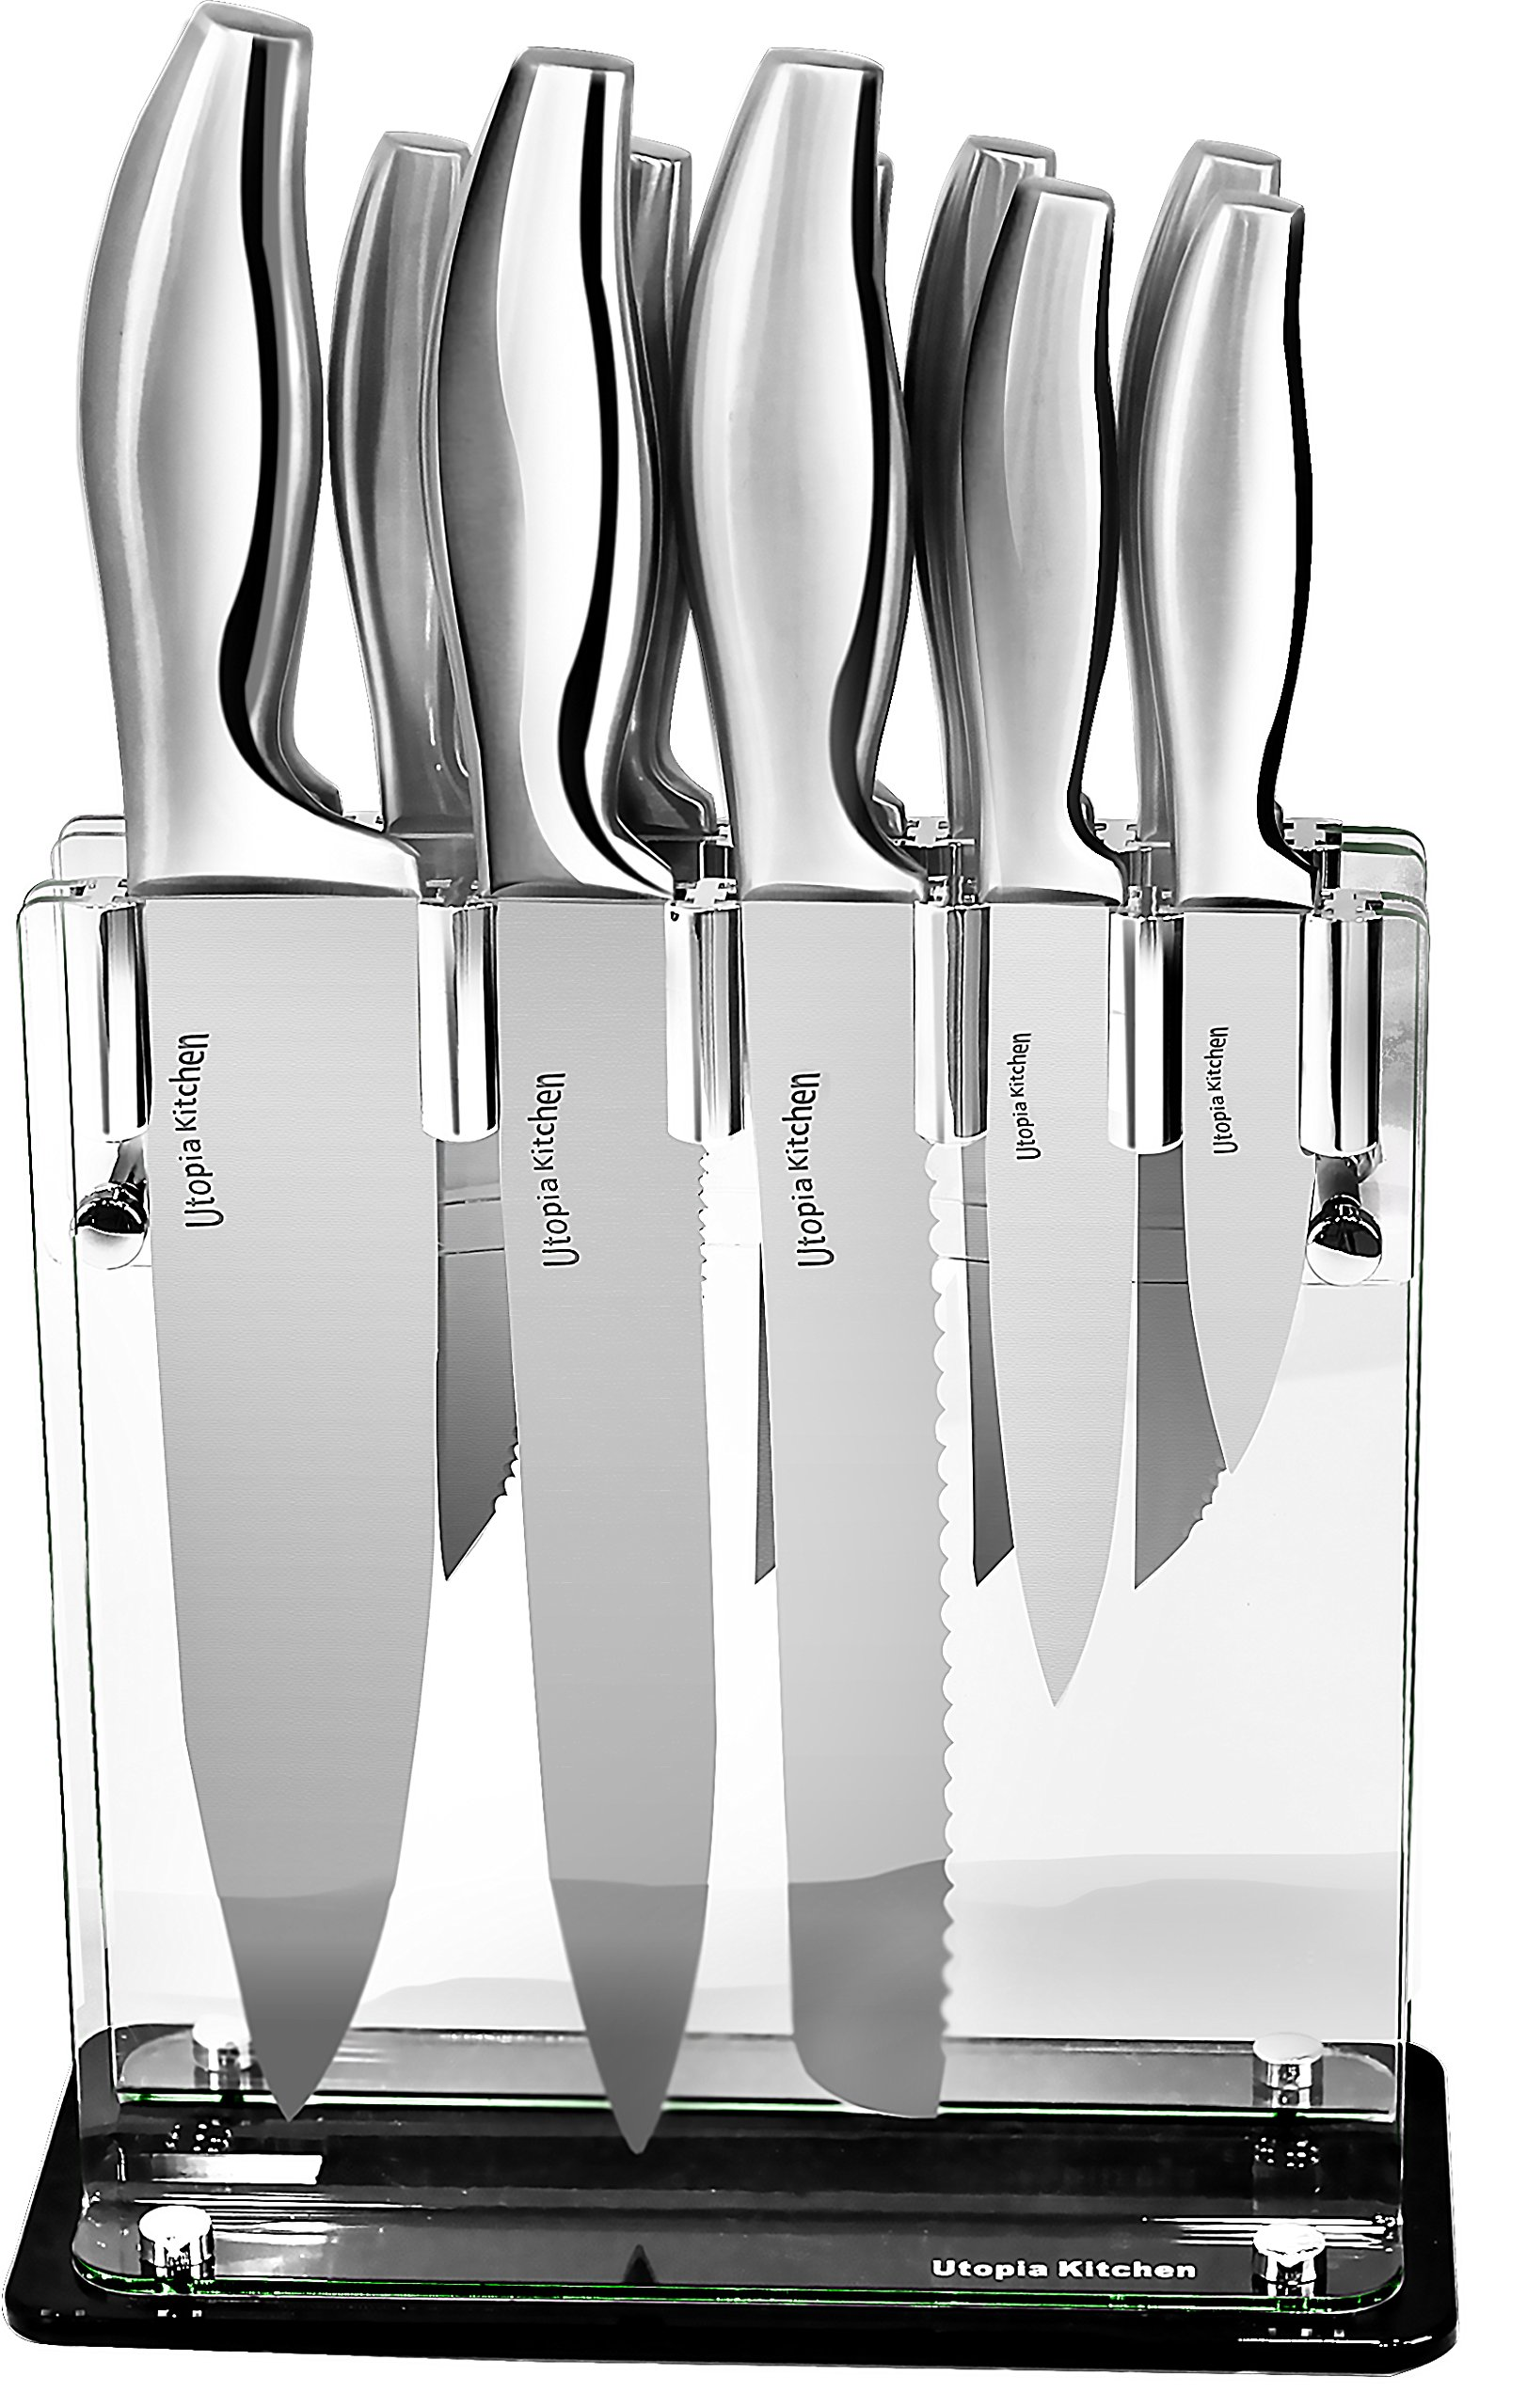 "Utopia Kitchen 430 Grade Stainless Steel Knives Set (11 Knives plus Acrylic Stand) - 8"" Chef Knife - 8"" Bread Knife - 8"" Carving Knife - 5"" Utility Knife - 3.5"" Pairing Knife - 6 x 4.5"" Steak Knives"